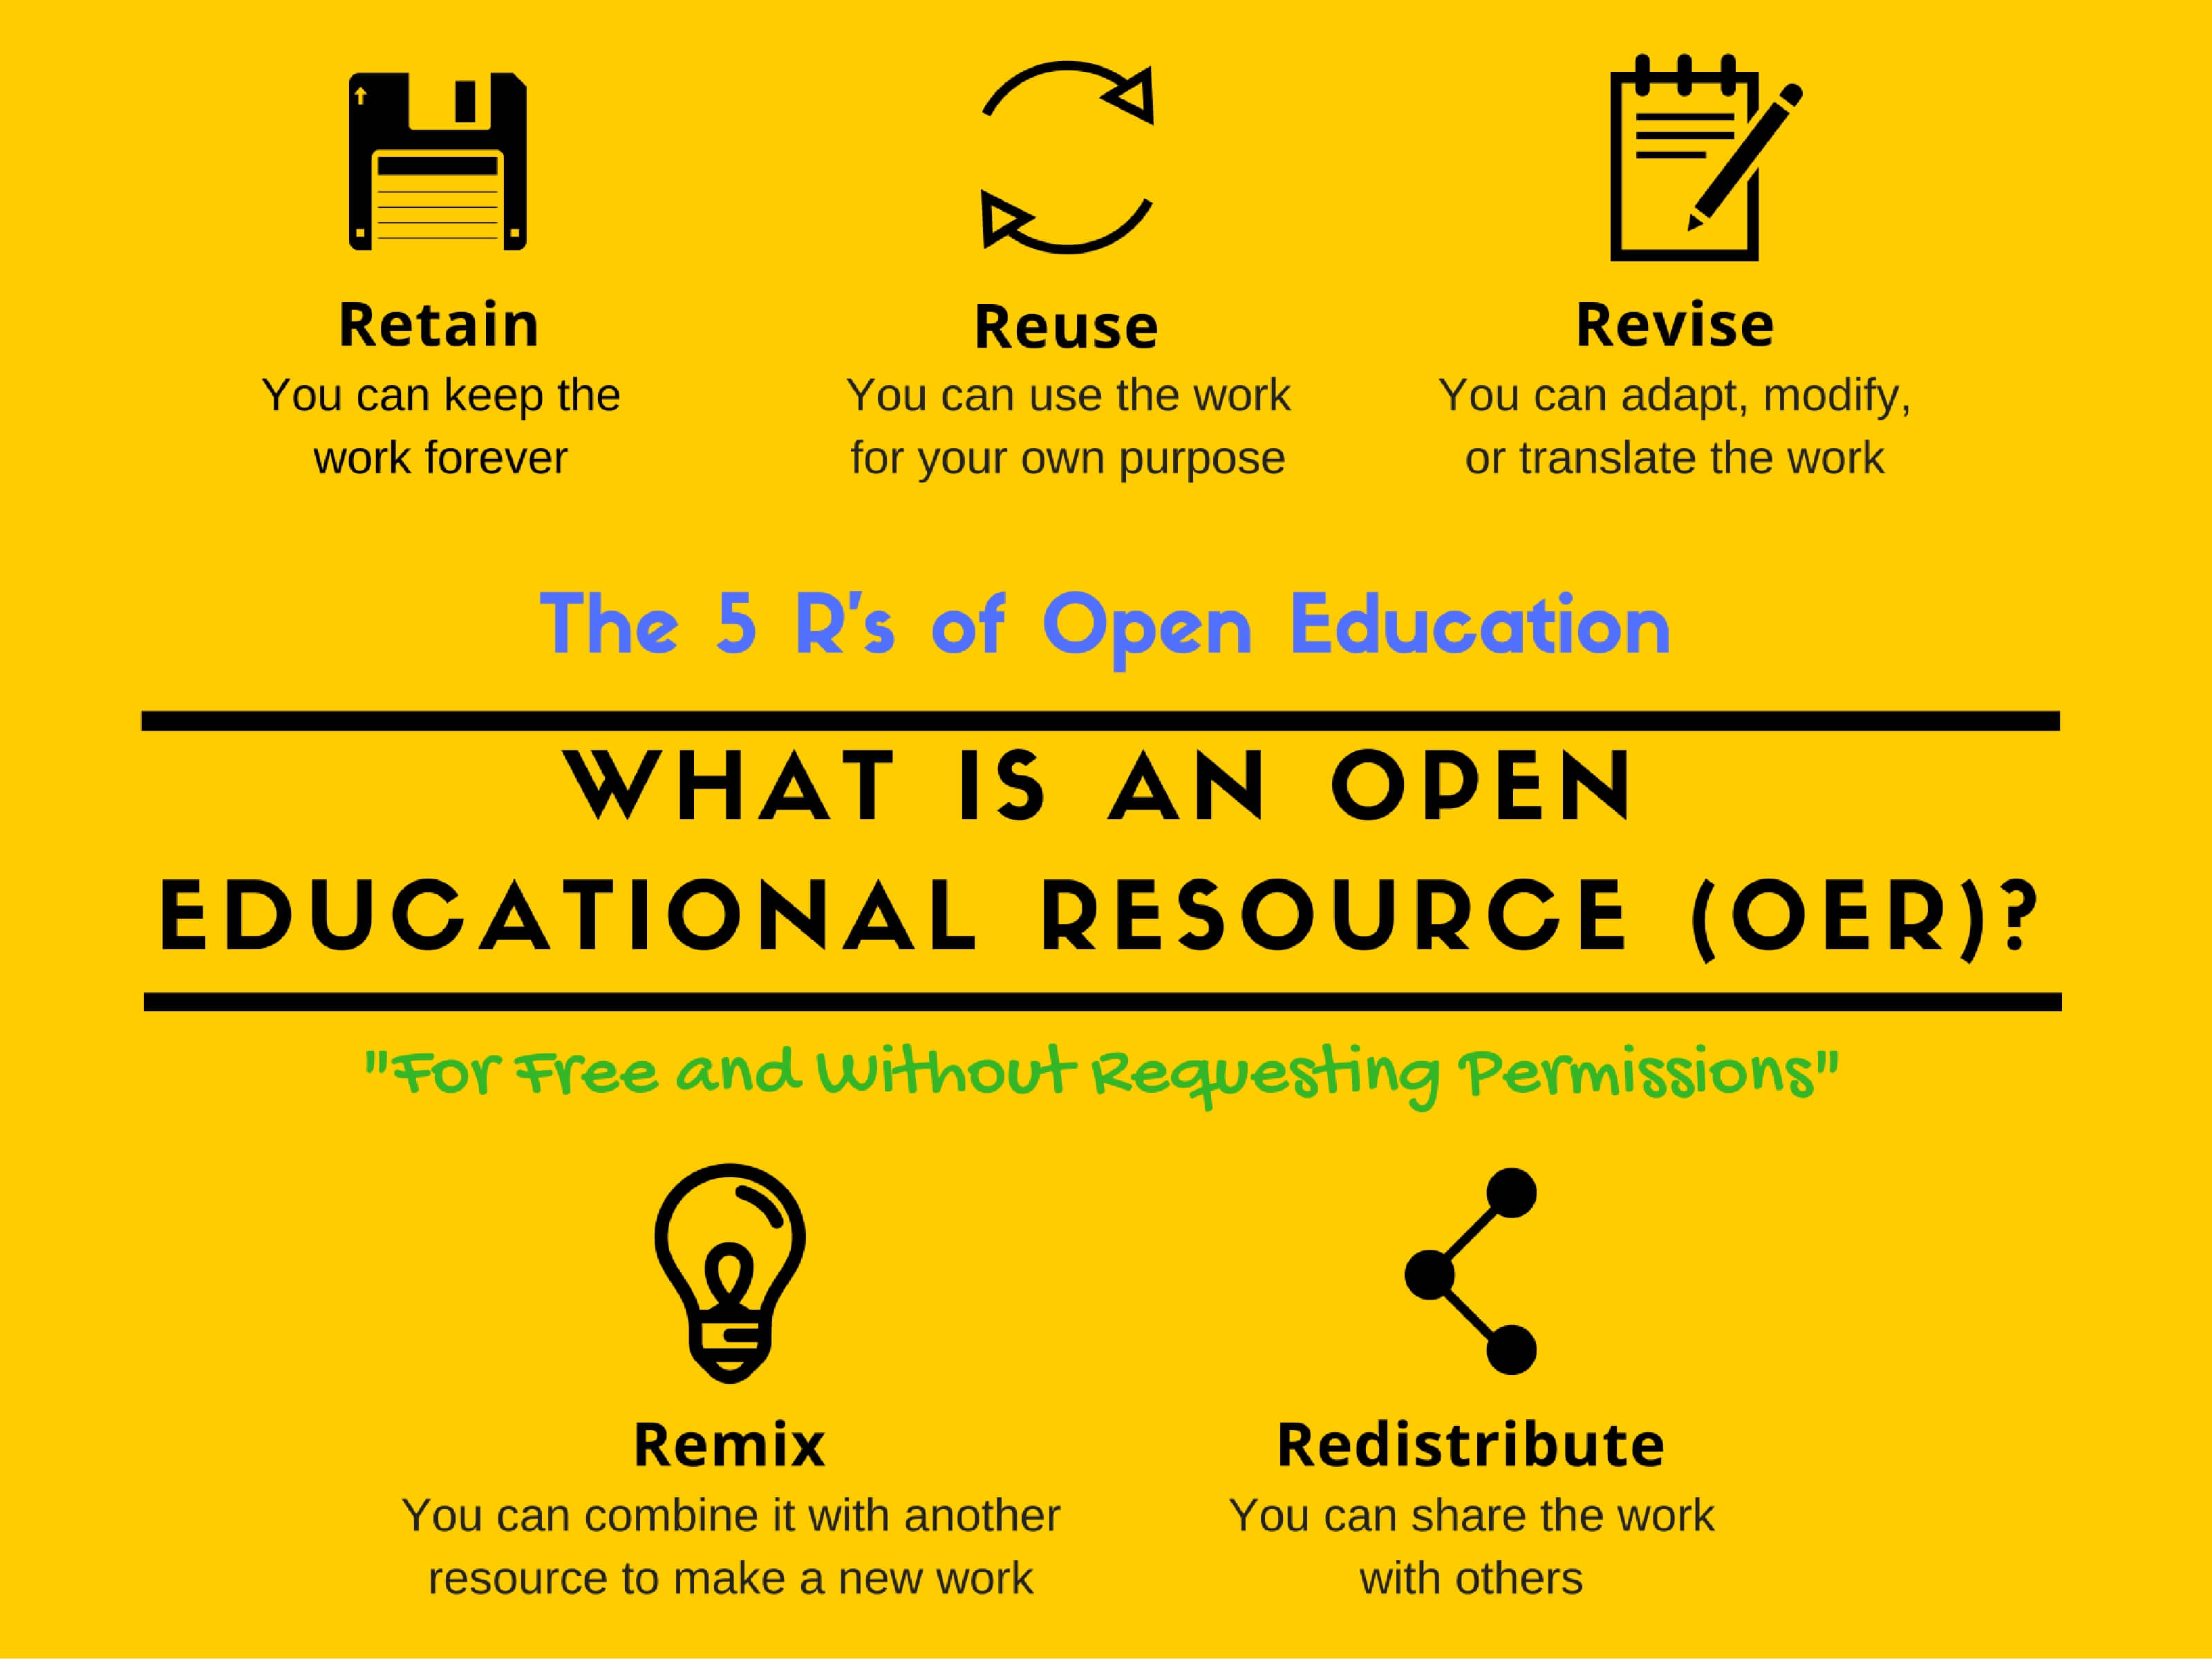 5Rs of Open Education